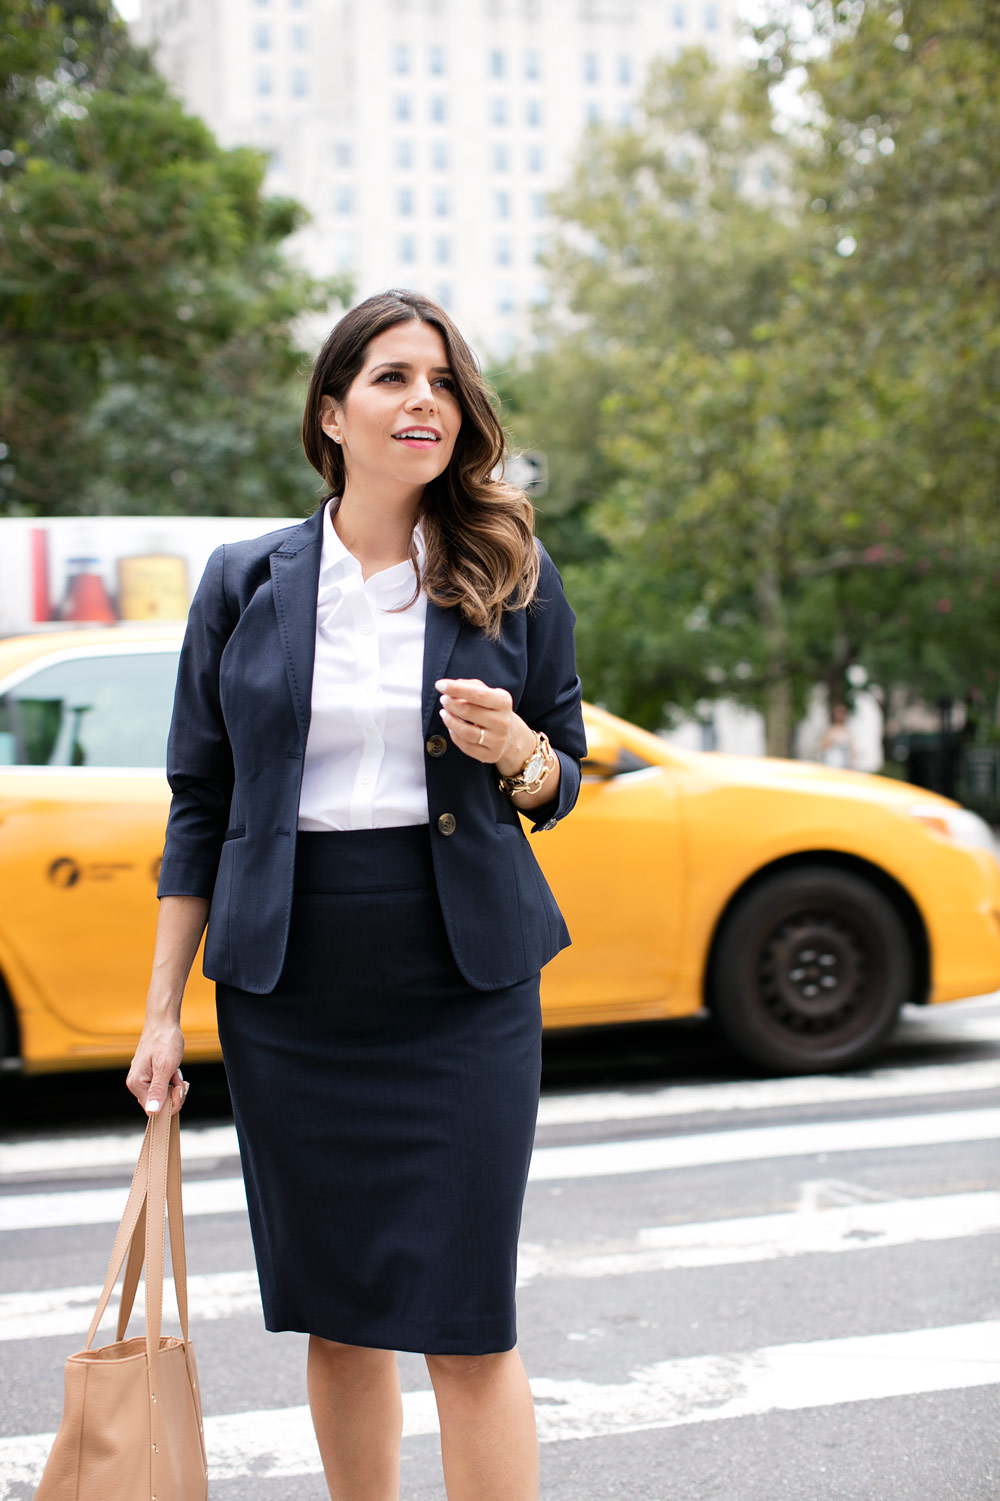 talbots-womens-suit-what-to-wear-to-work-blazer-new-york-city-nyc-corporate-catwalk-fashion-blog-3